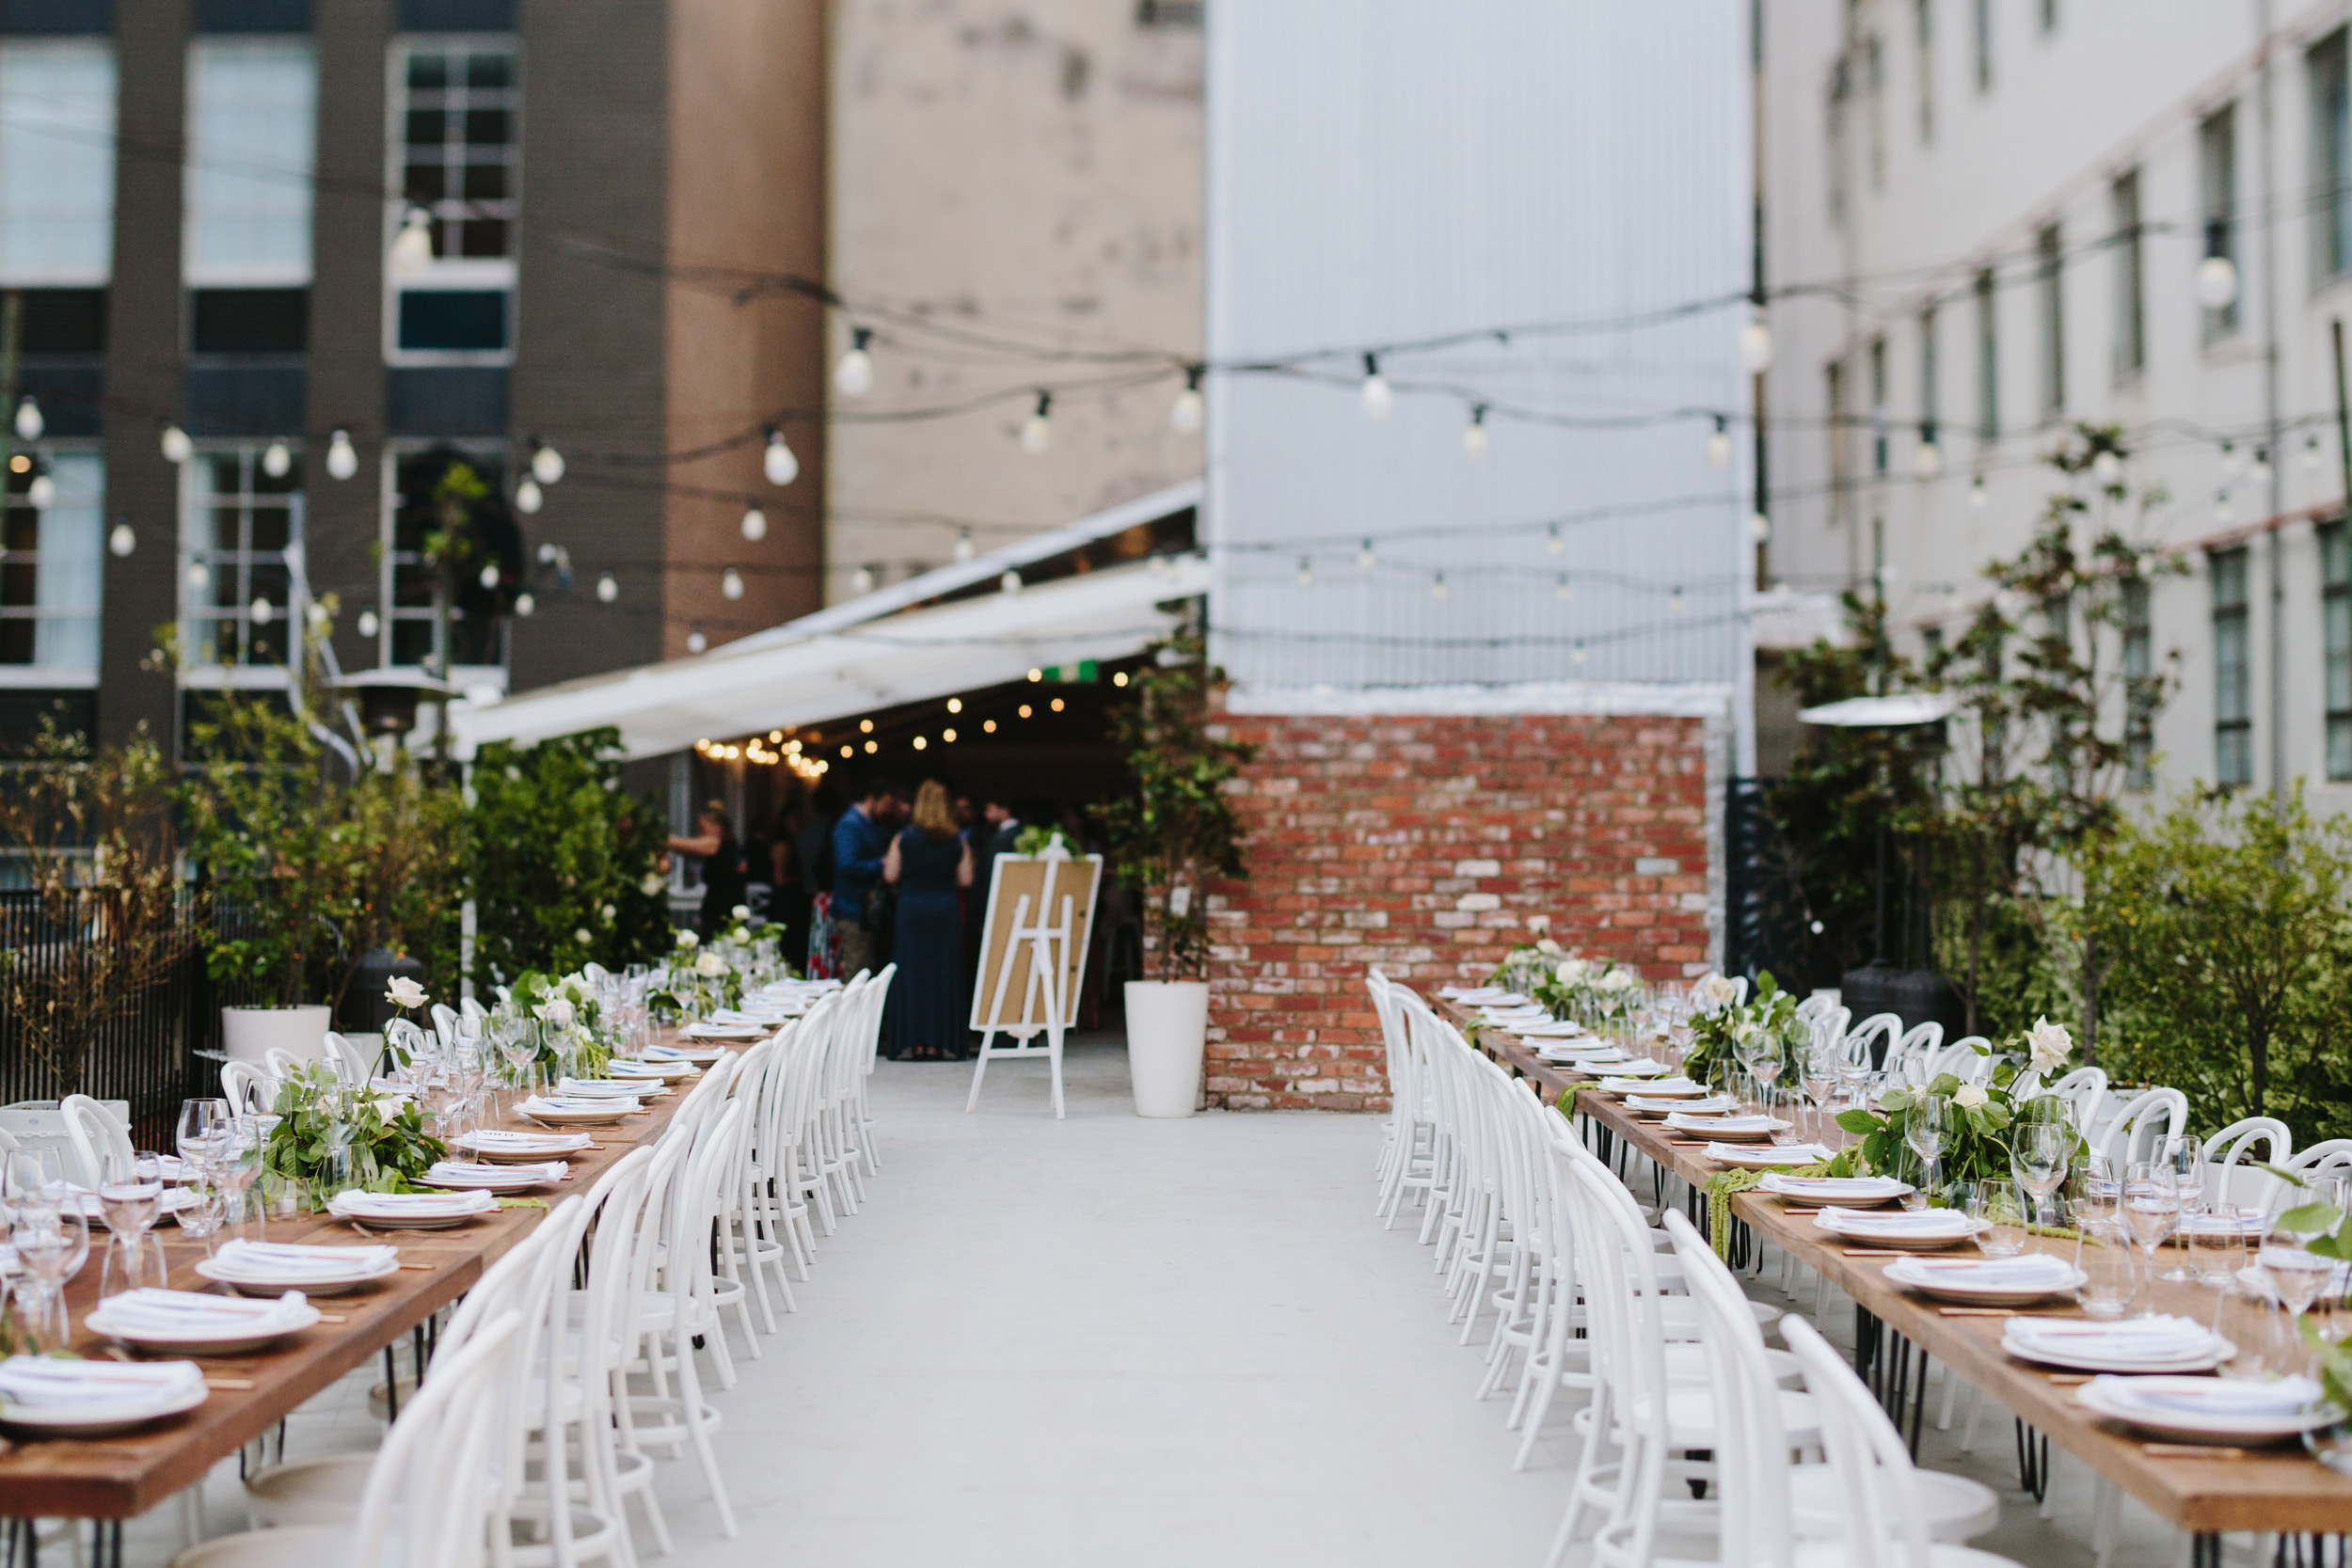 Melbourne_City_Rooftop_Wedding_Tyson_Brigette080.JPG